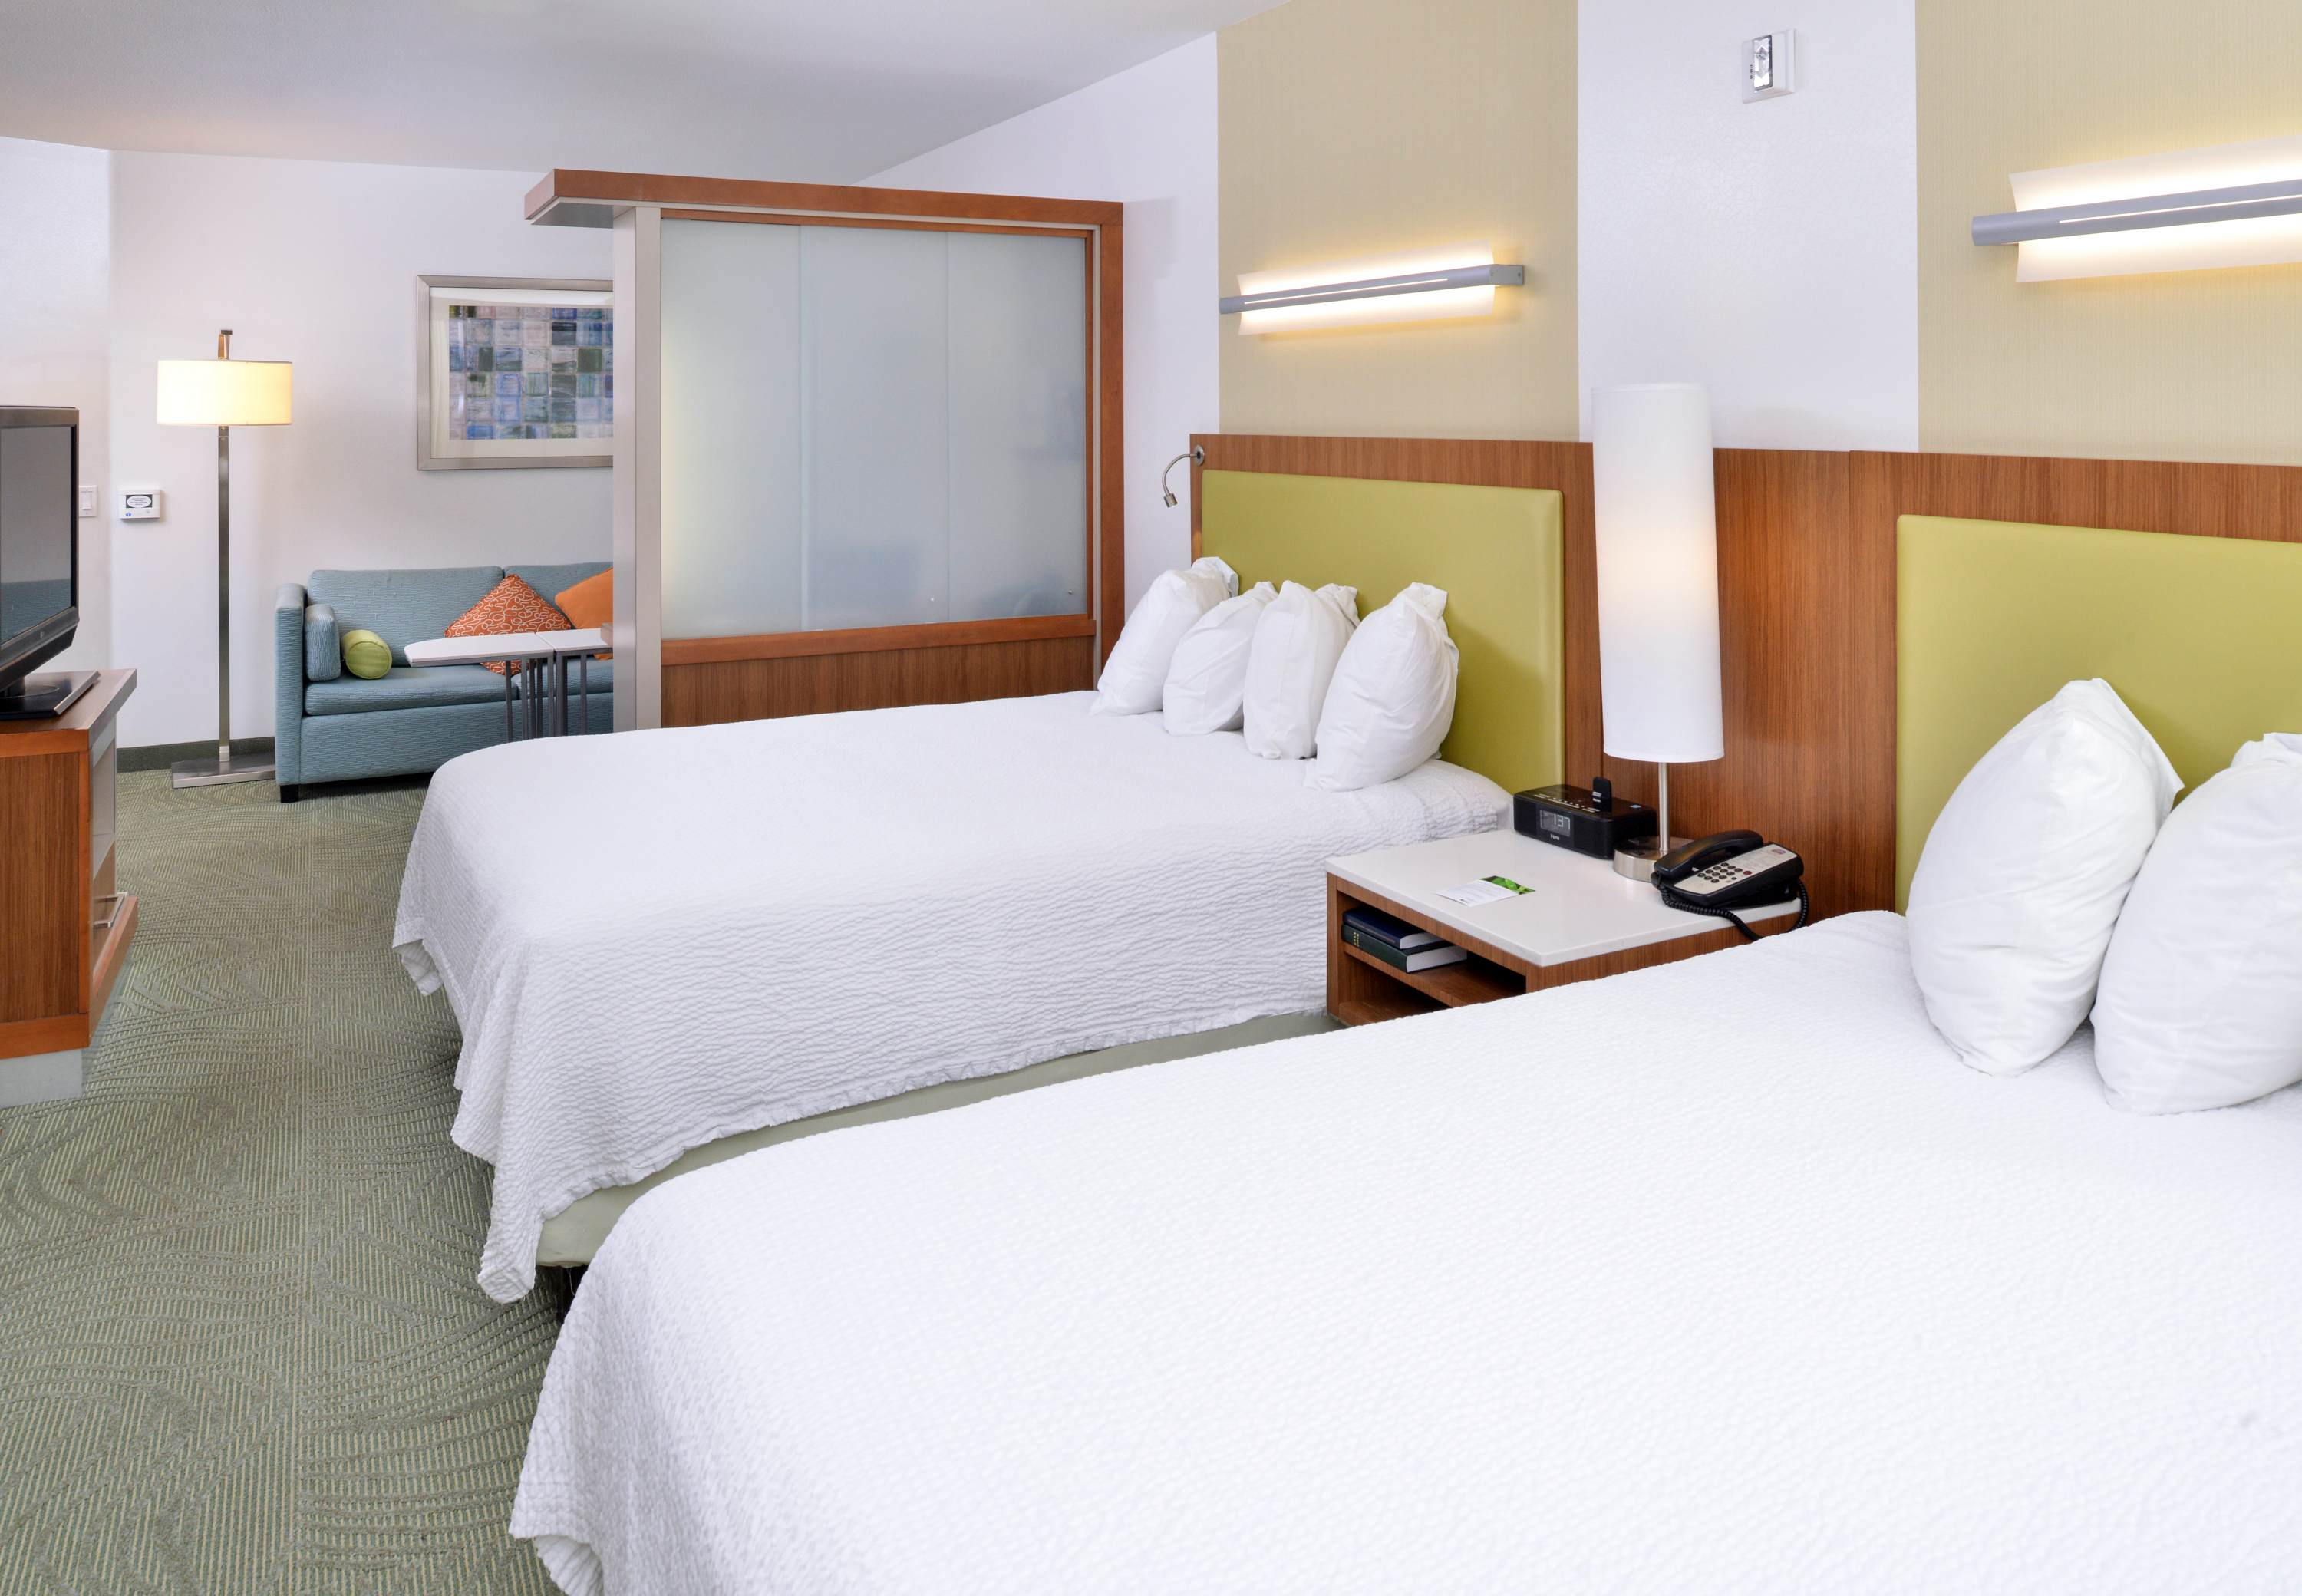 SpringHill Suites by Marriott Kingman Route 66 image 4